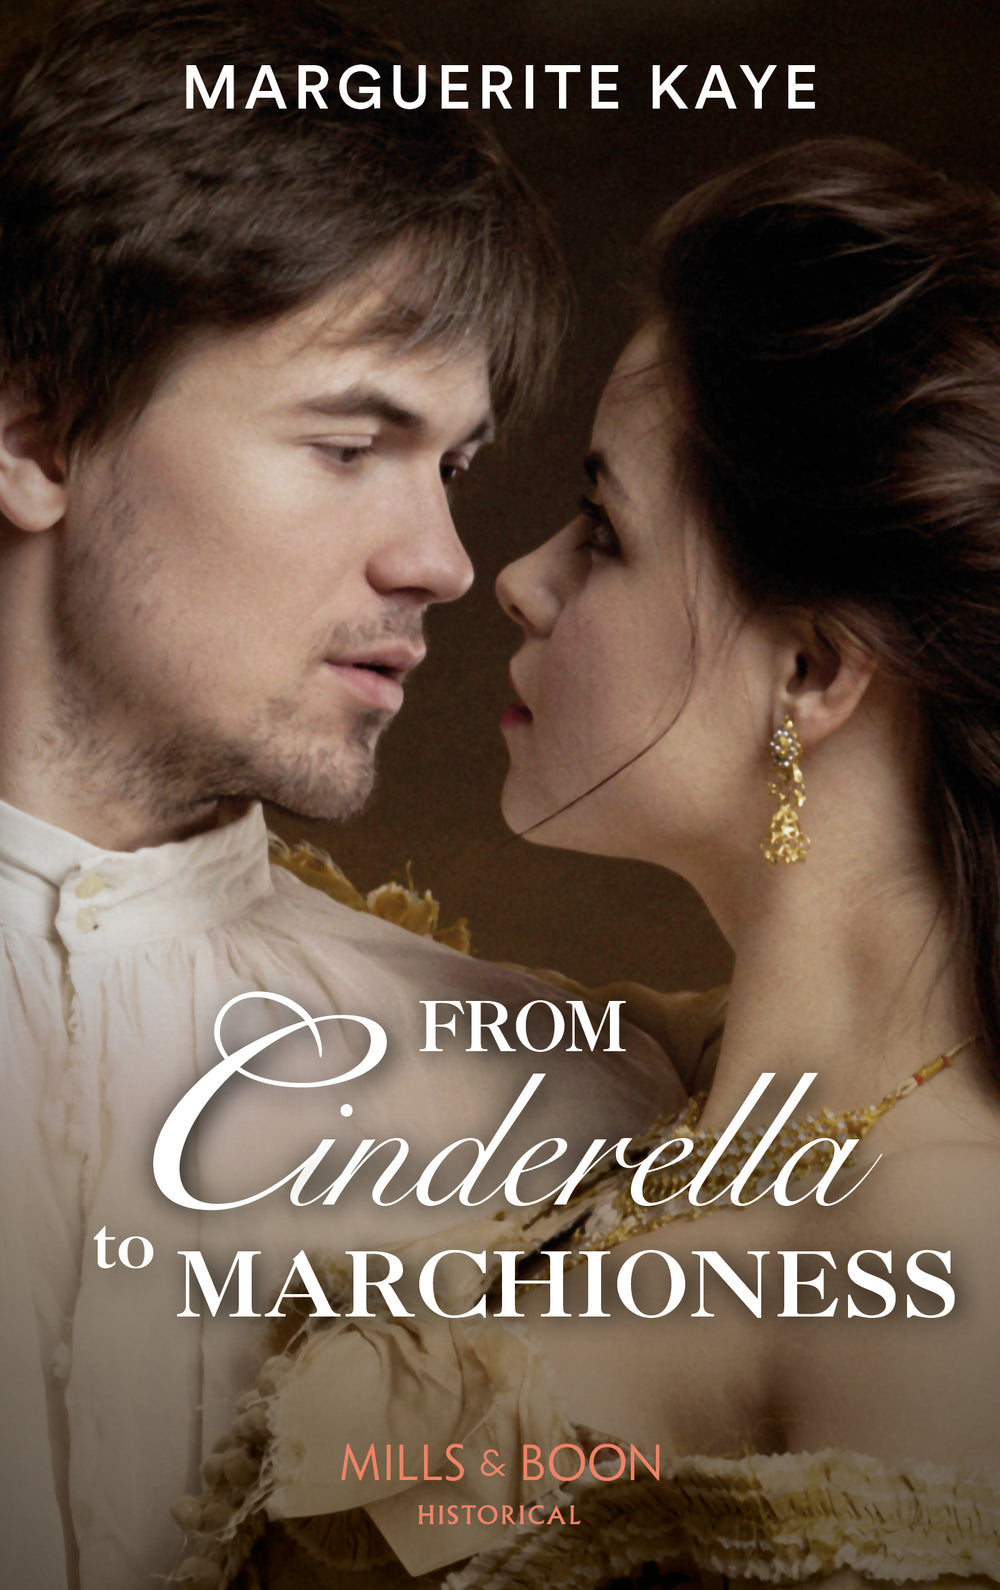 From Cinderella to Marchioness